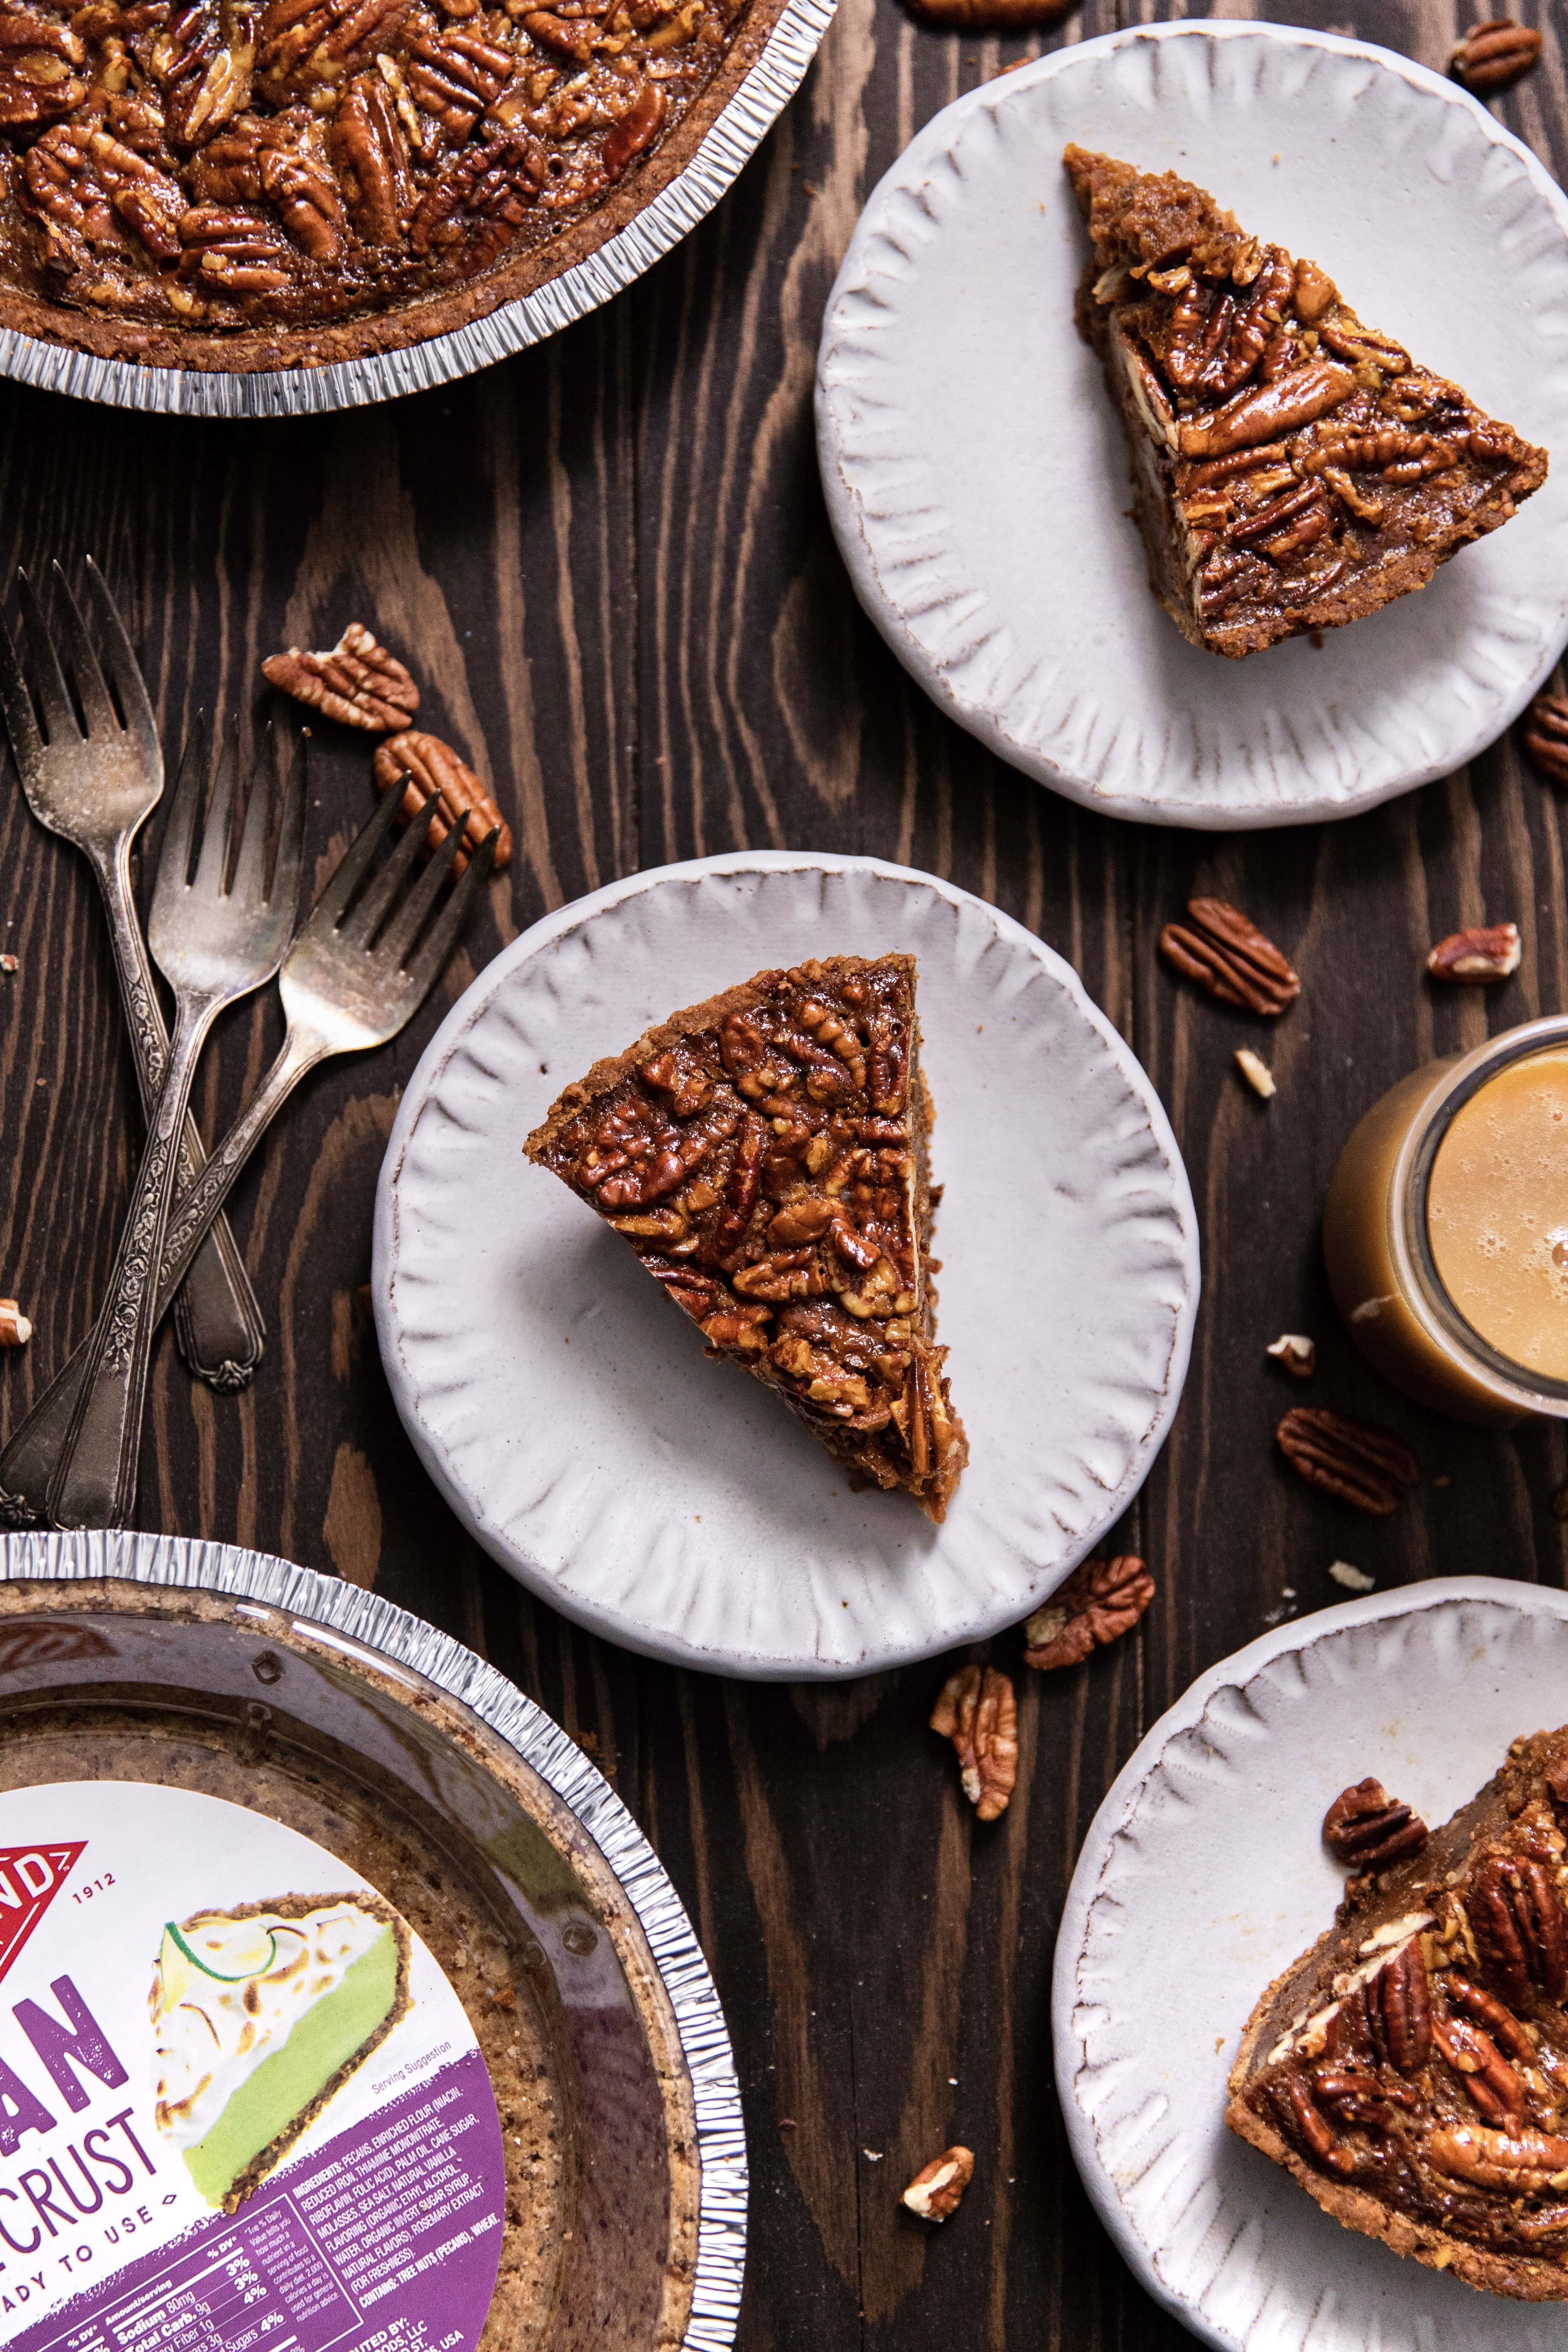 Salted caramel pecan pie with three slices of pie on plates